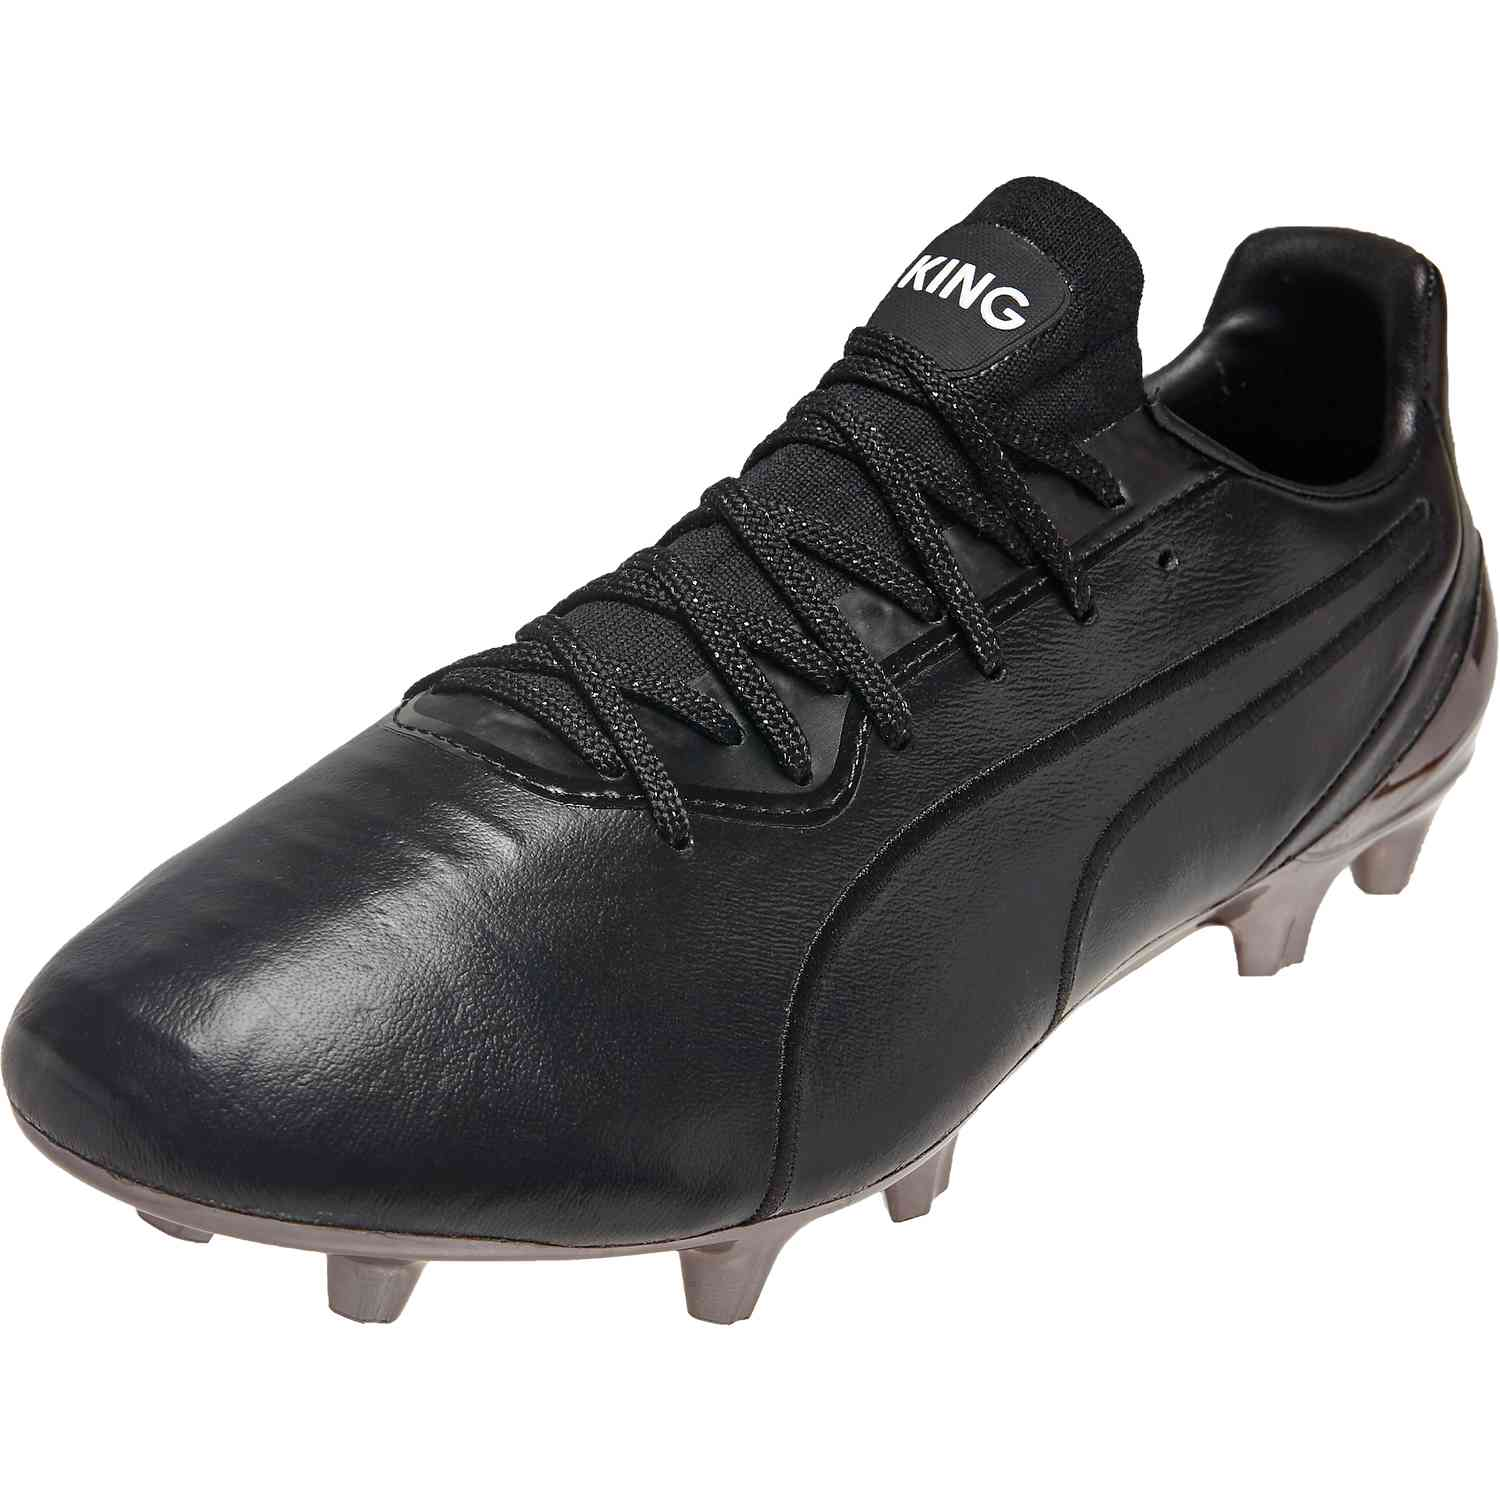 cba78e52724 Puma King Platinum FG – Black